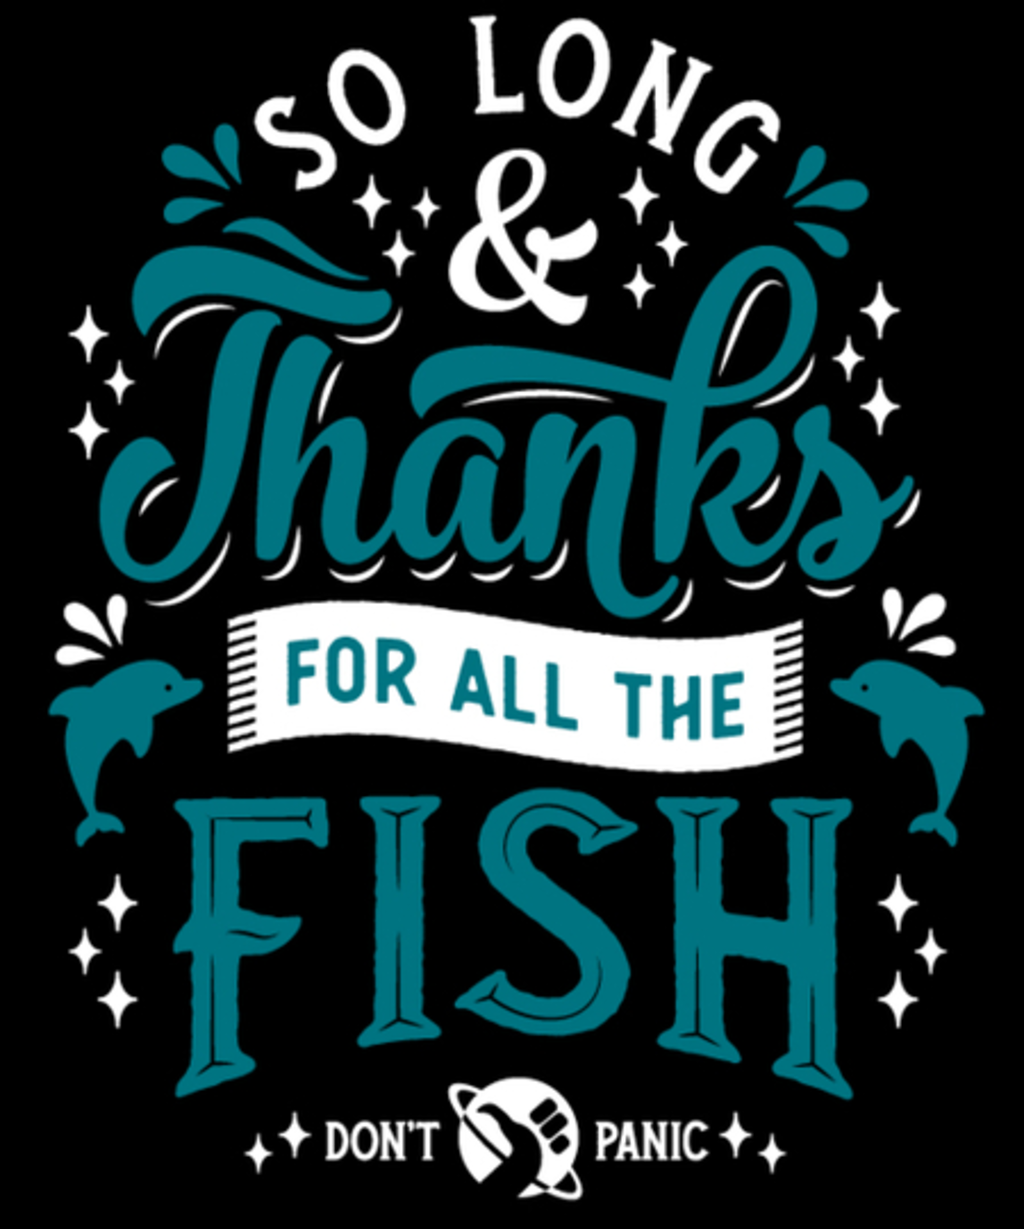 Qwertee: So Long and Thanks!